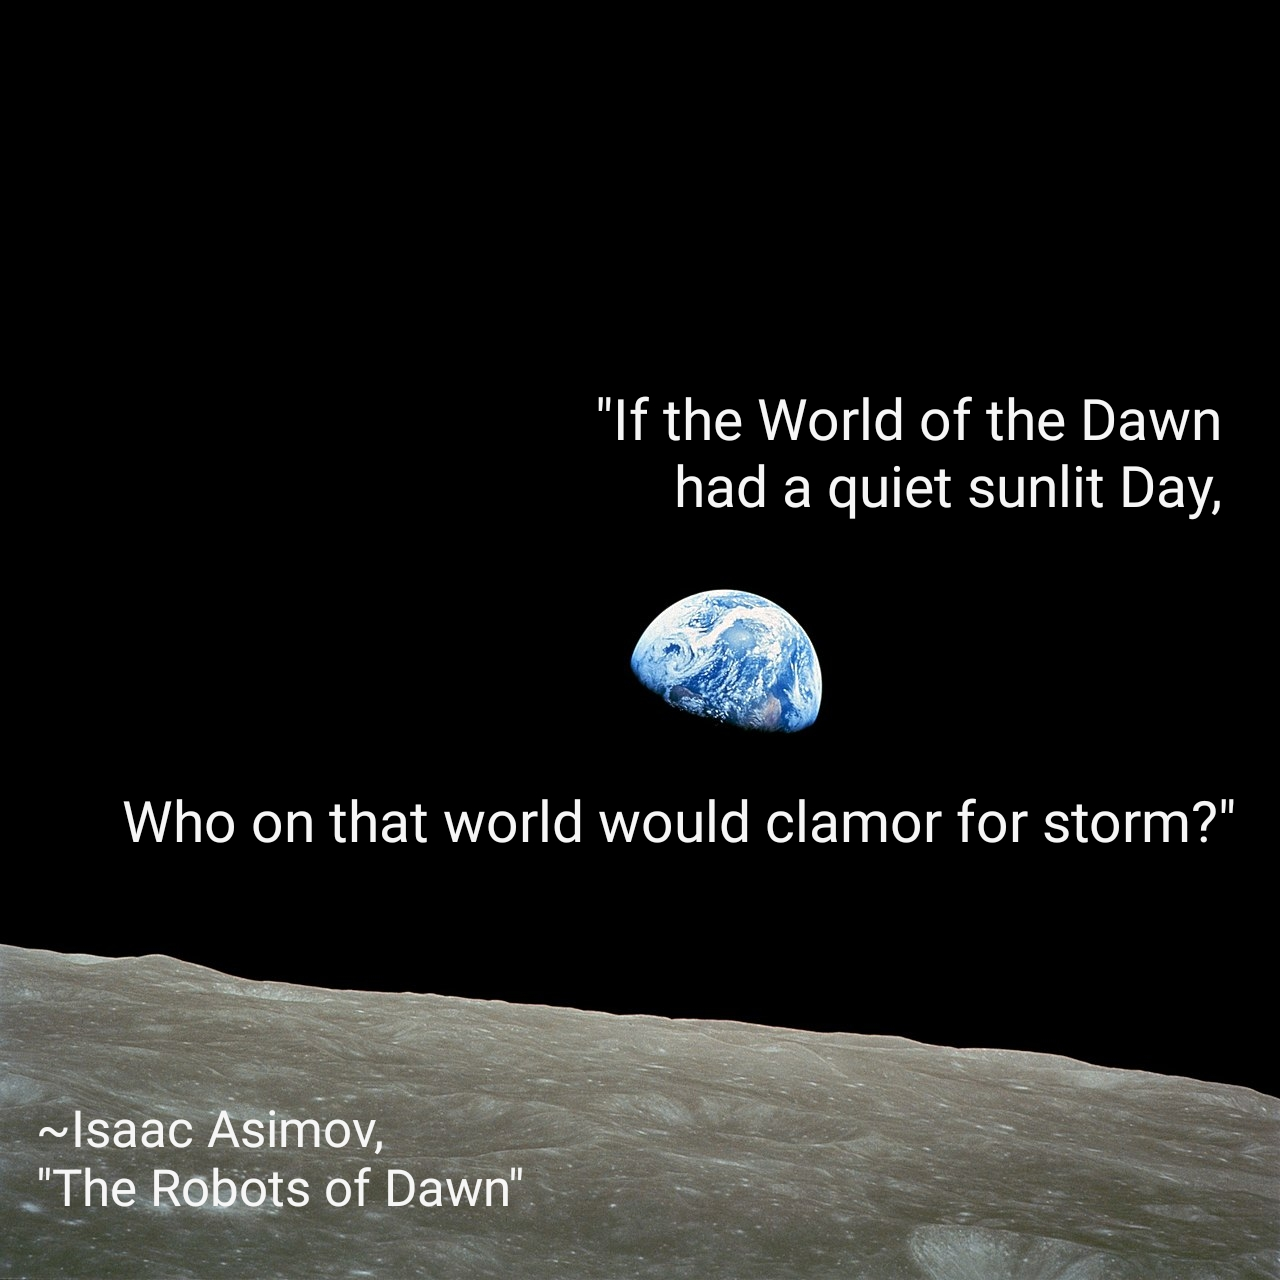 """If the World of the Dawn had a quiet sunlit Day, who on that world would clamor for storm?"" ~Isaac Asimov, ""The Robots of Dawn"" [1280×1280]"